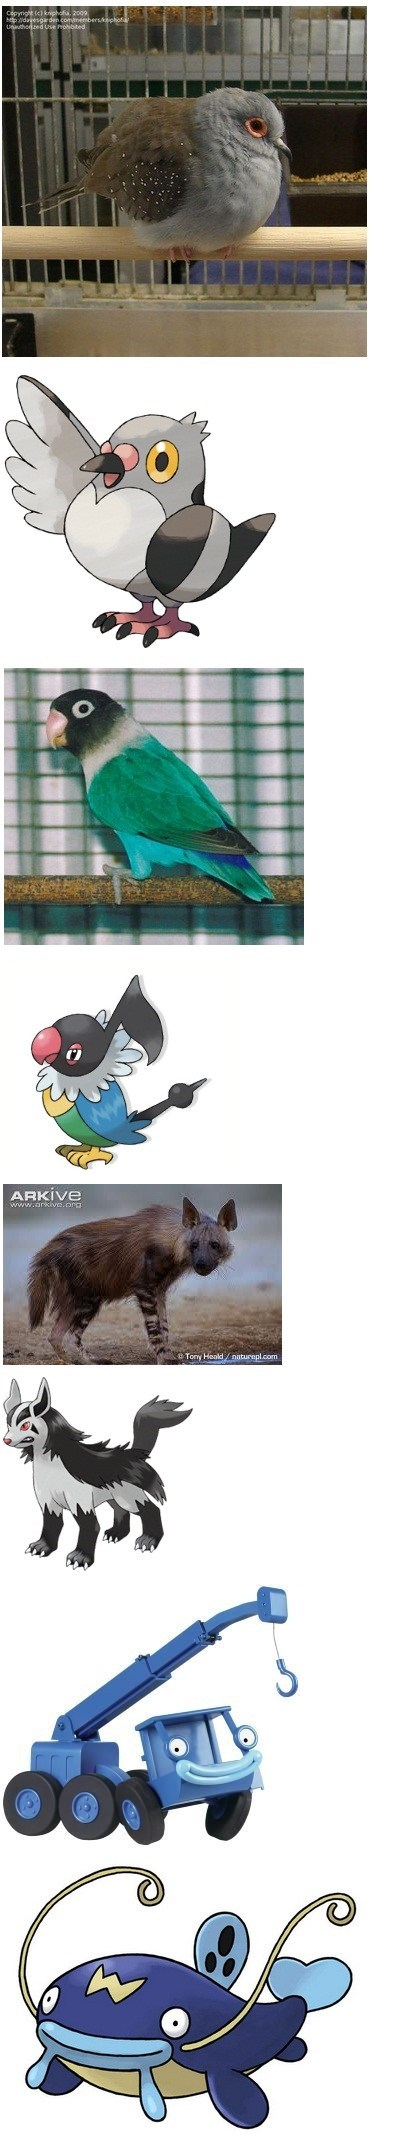 Trying to Find the Animal a Pokemon is Based On...